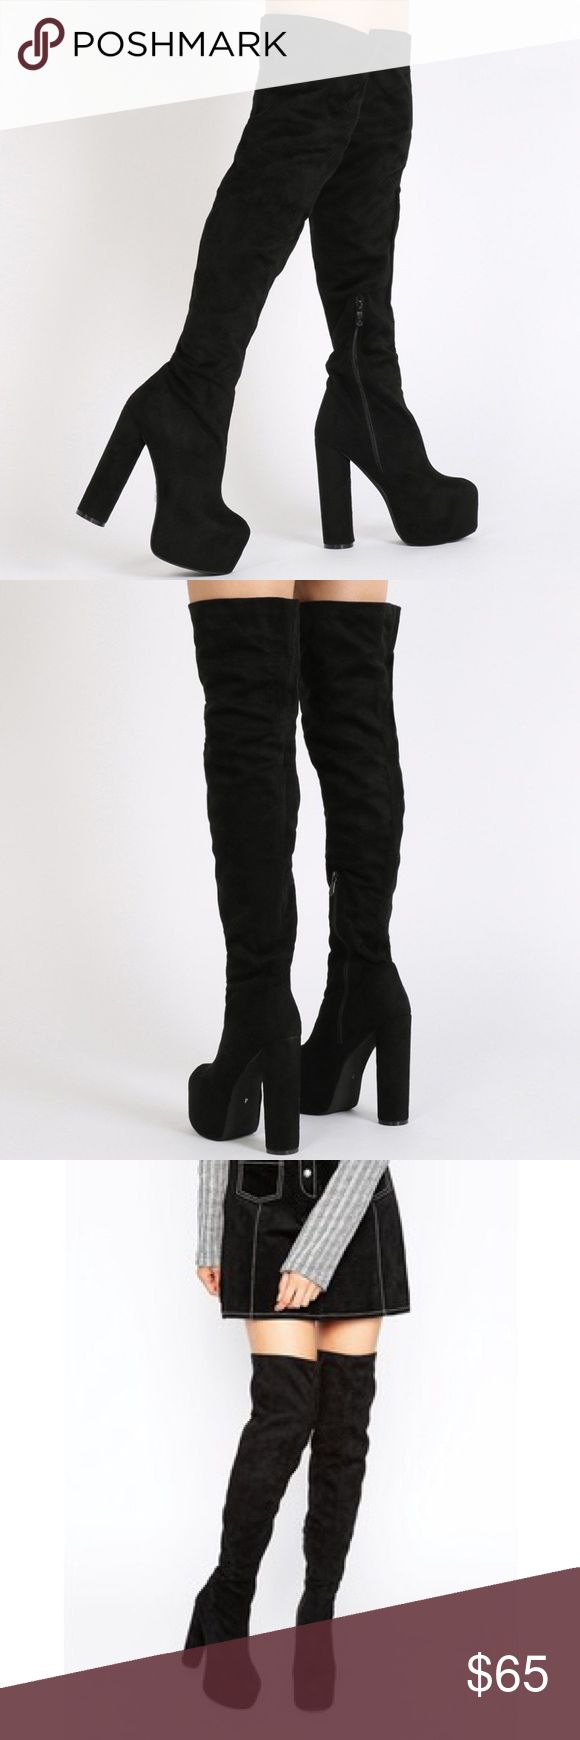 Suede Thigh High Boots Public Desire Sz:7 Black Suede *BRAND NEW NEVER WORN* bought them from asos ASOS Shoes Over the Knee Boots